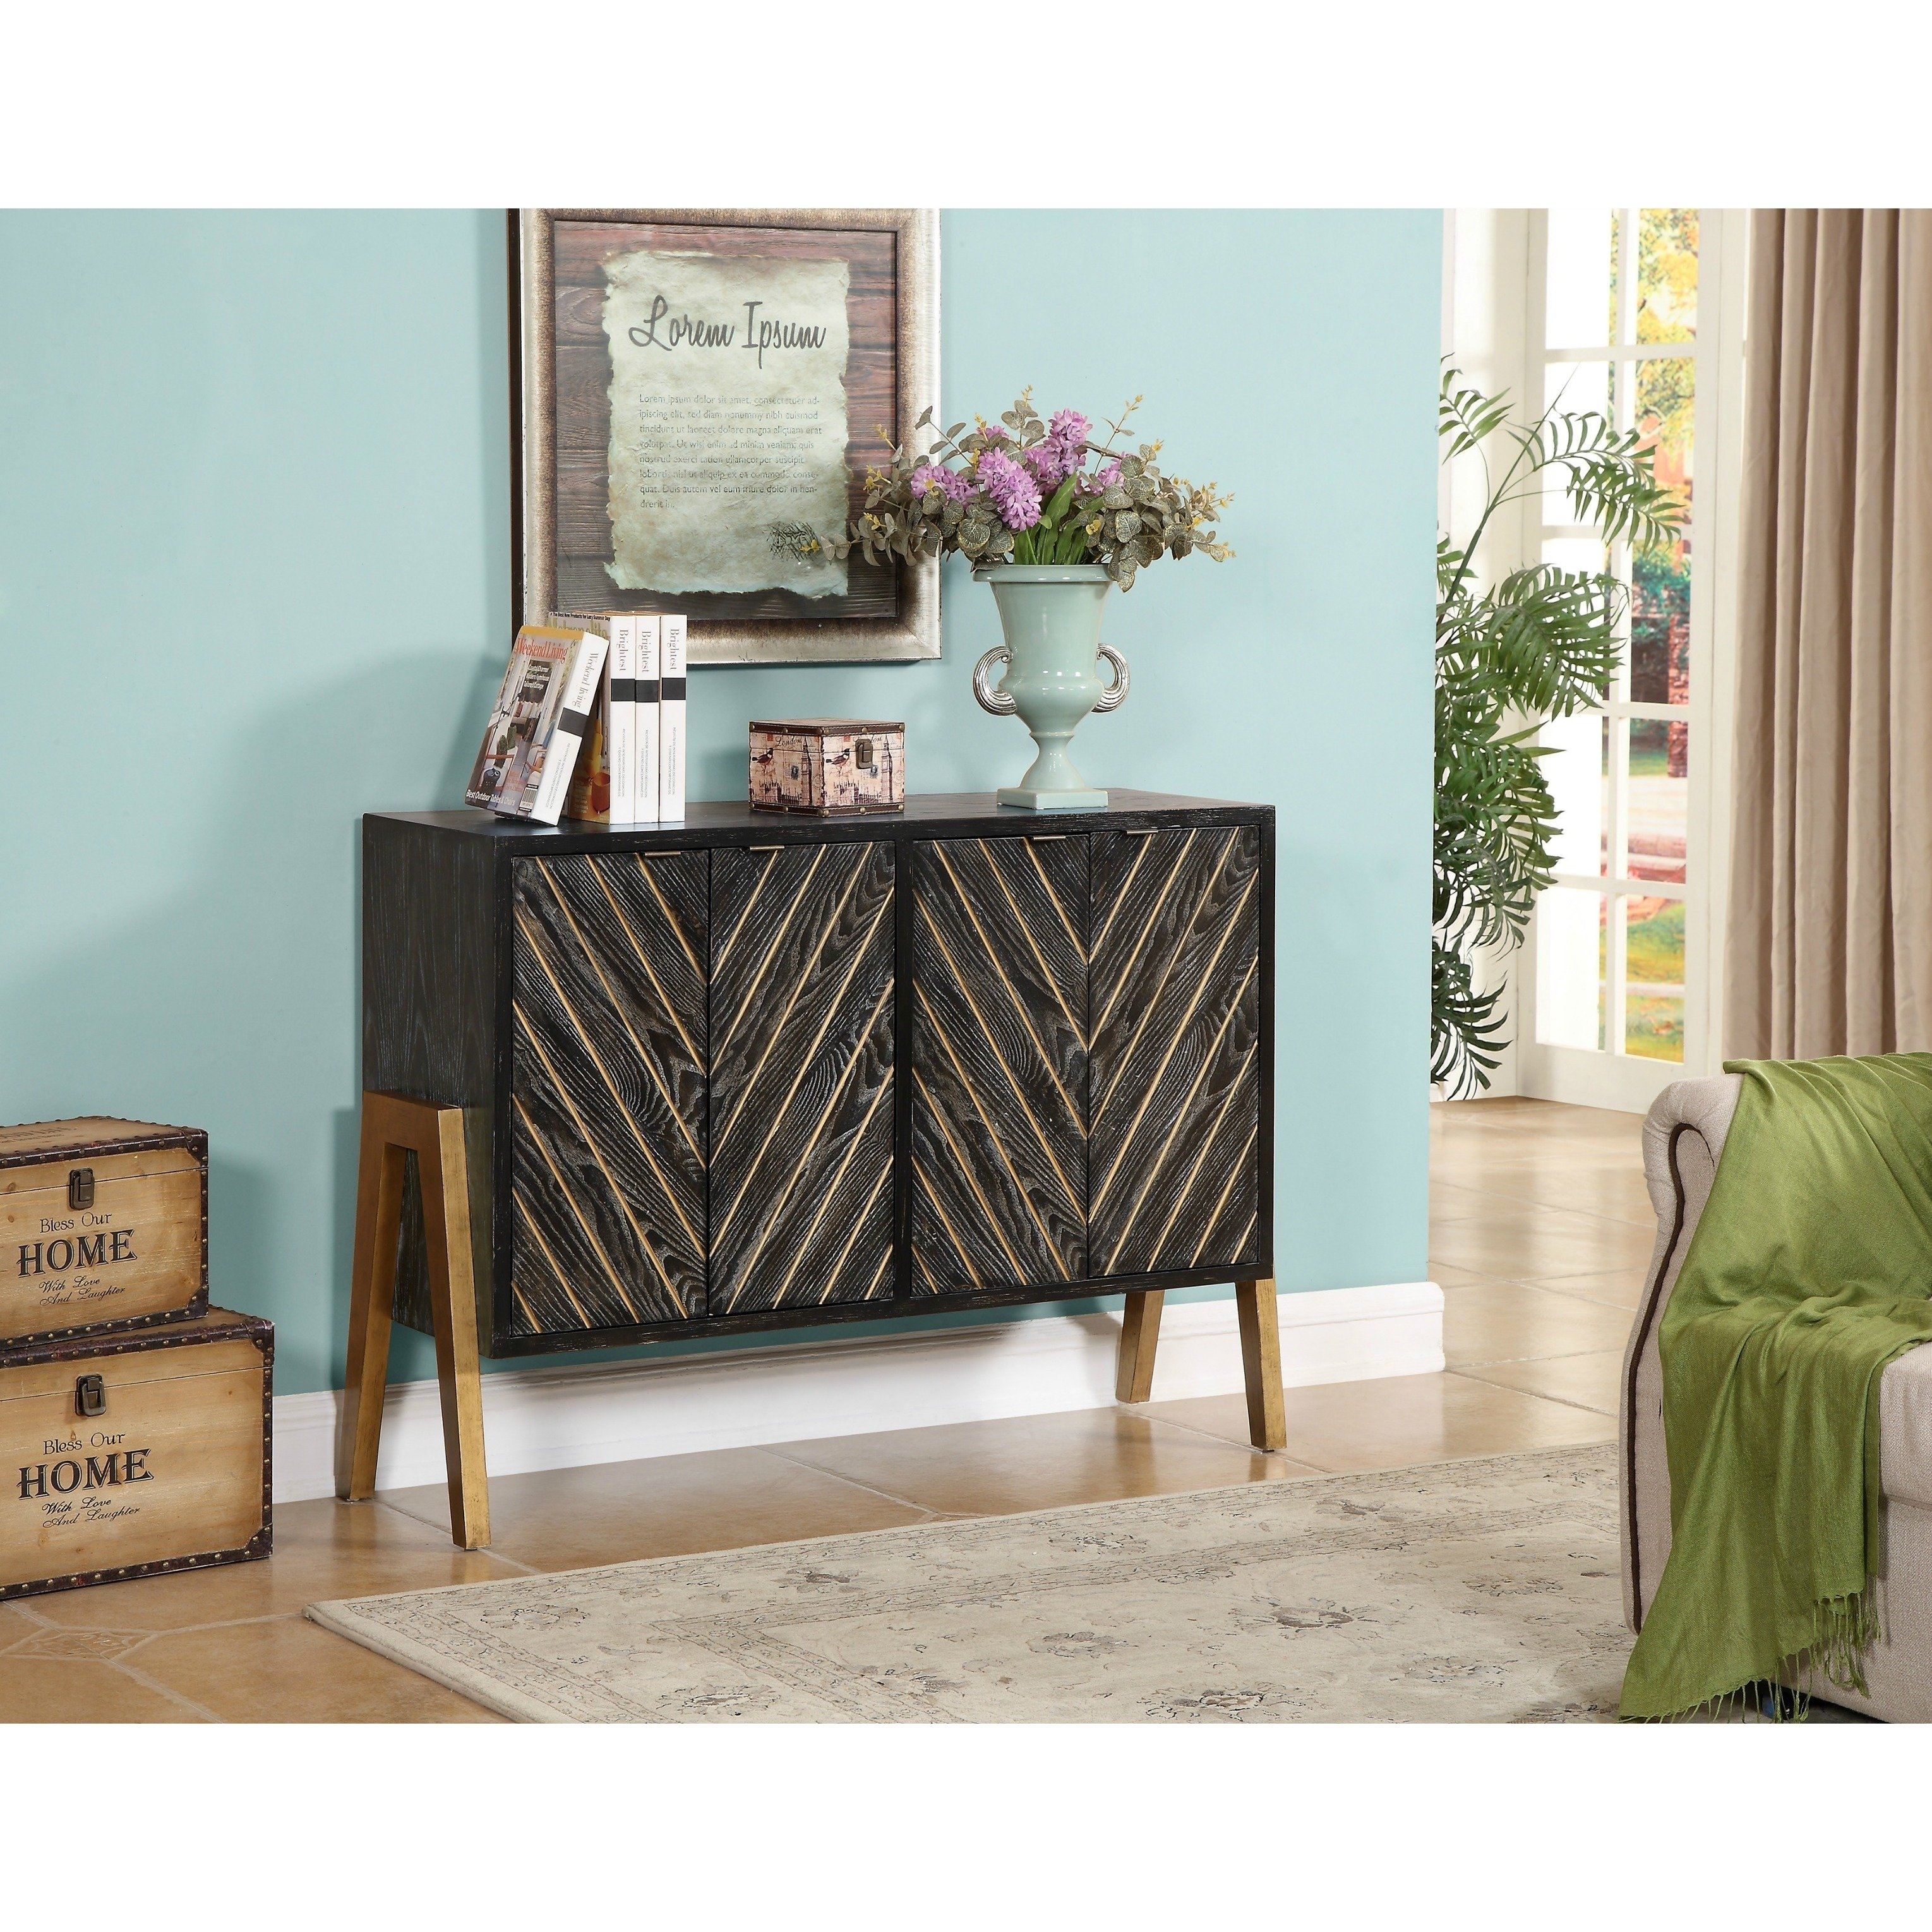 Shop Christopher Knight Home Black And Gold 4-Door Sideboard - Free inside Brown Chevron 4-Door Sideboards (Image 23 of 30)